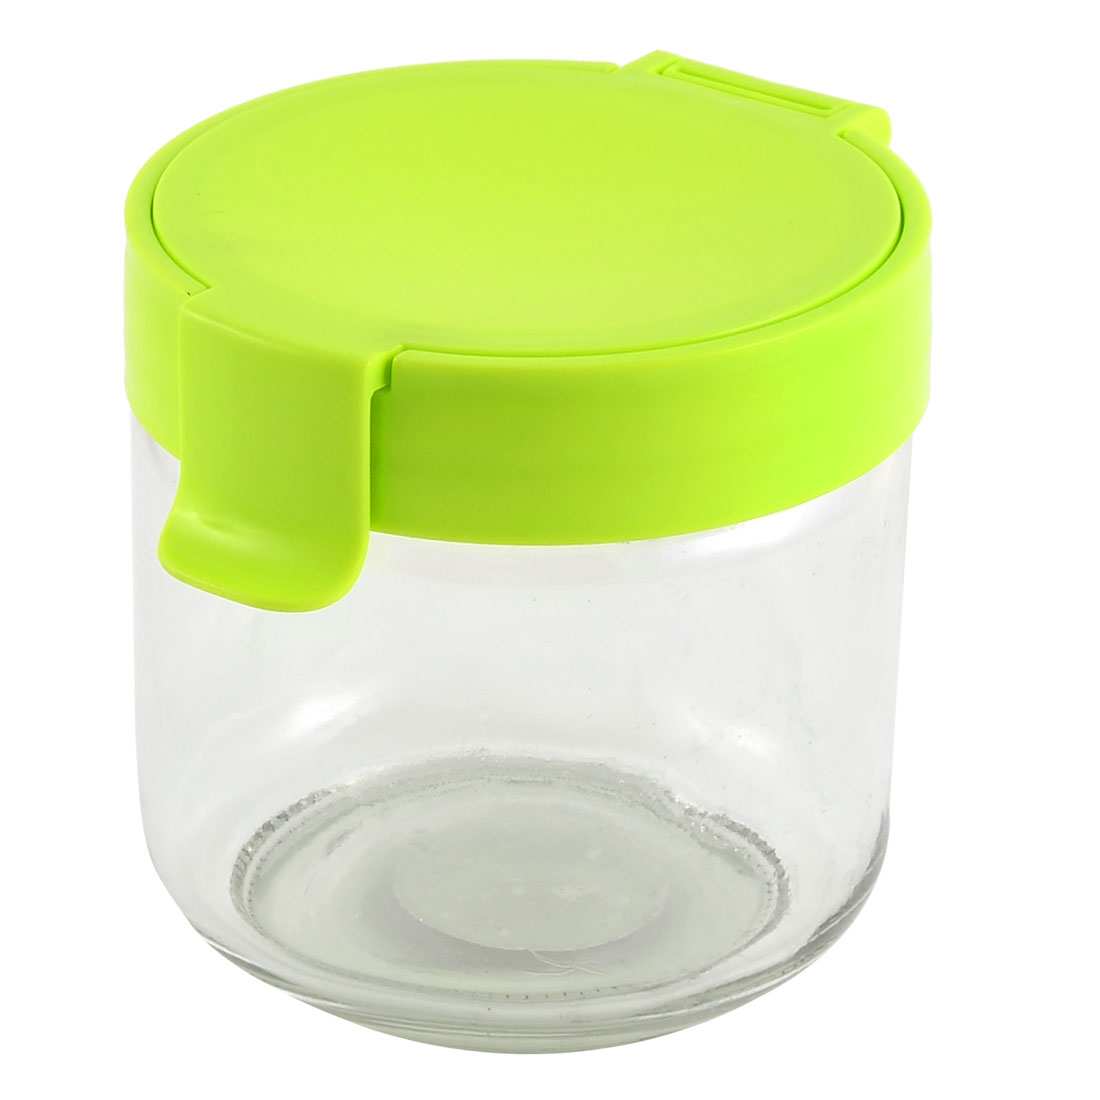 Household Glass Cylinder Melon Seeds Tea Candy Coffee Food Storage Container Box Green 730ML